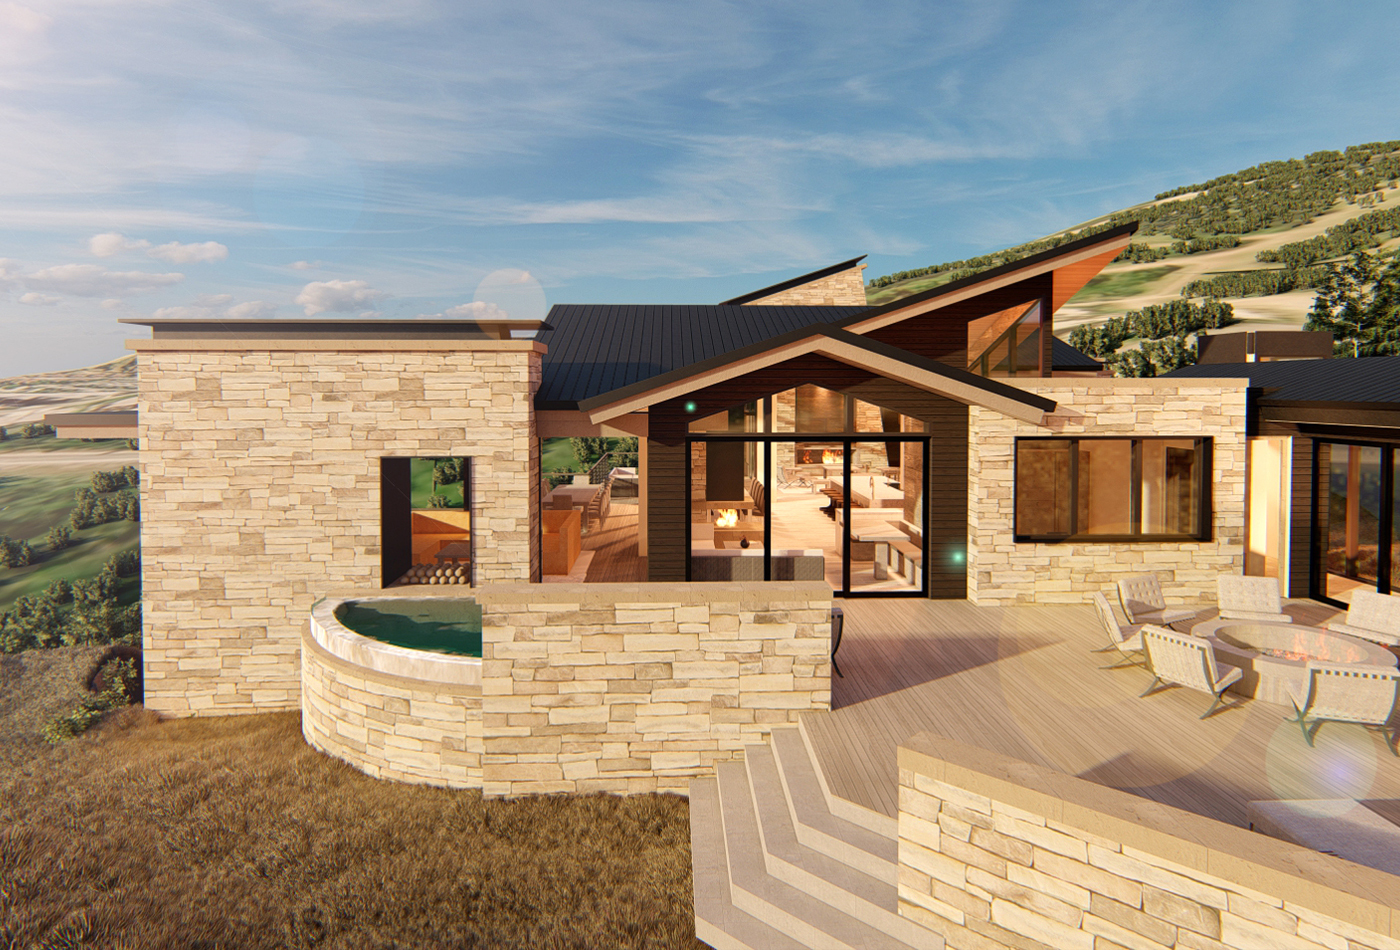 Park City Residence Rendering Exterior Fire Pit Patio